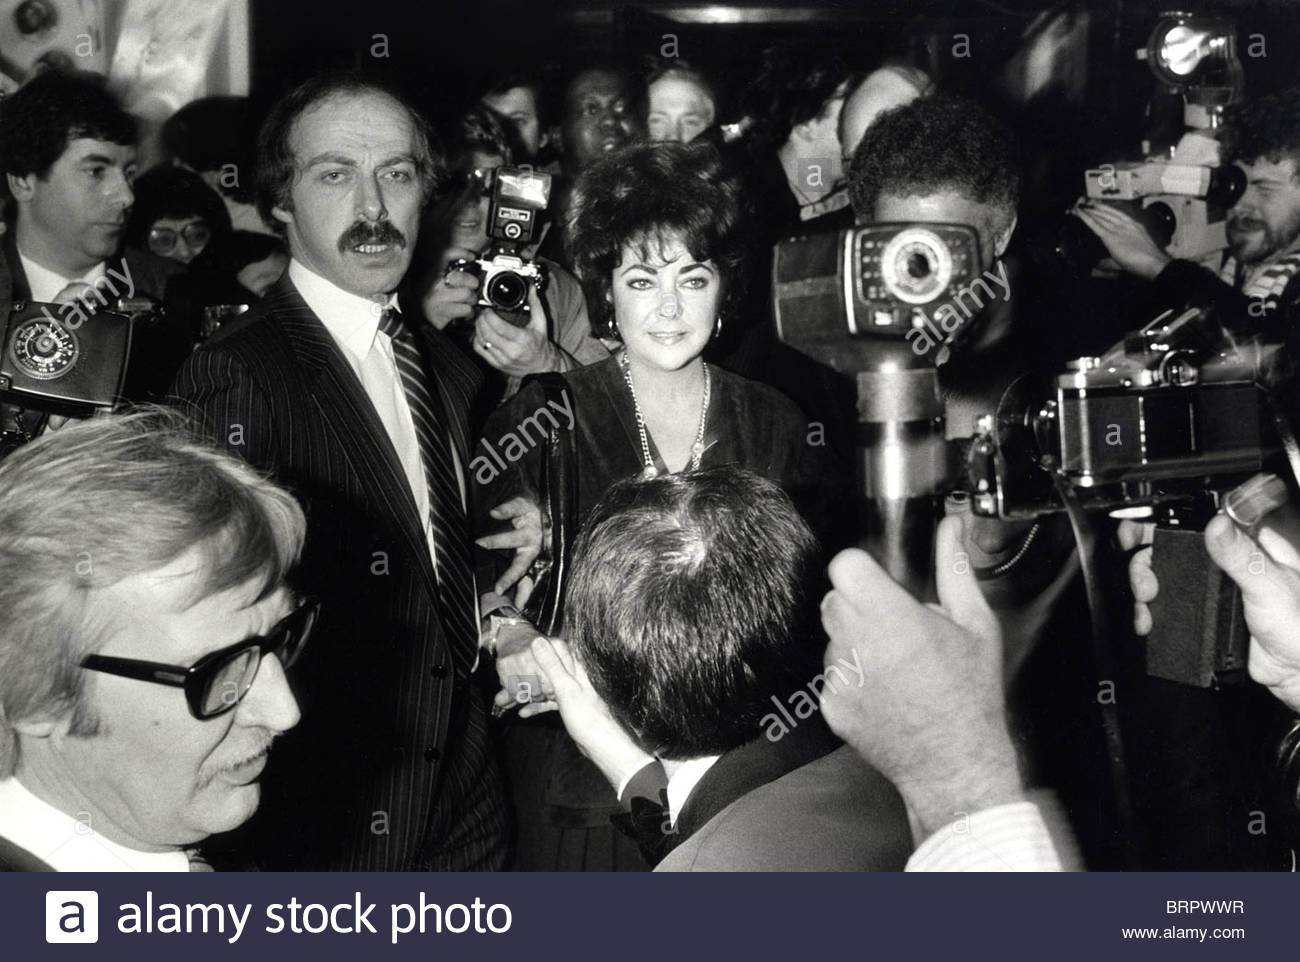 elizabeth-taylor-and-bodyguards-in-a-press-of-photographers-BRPWWR